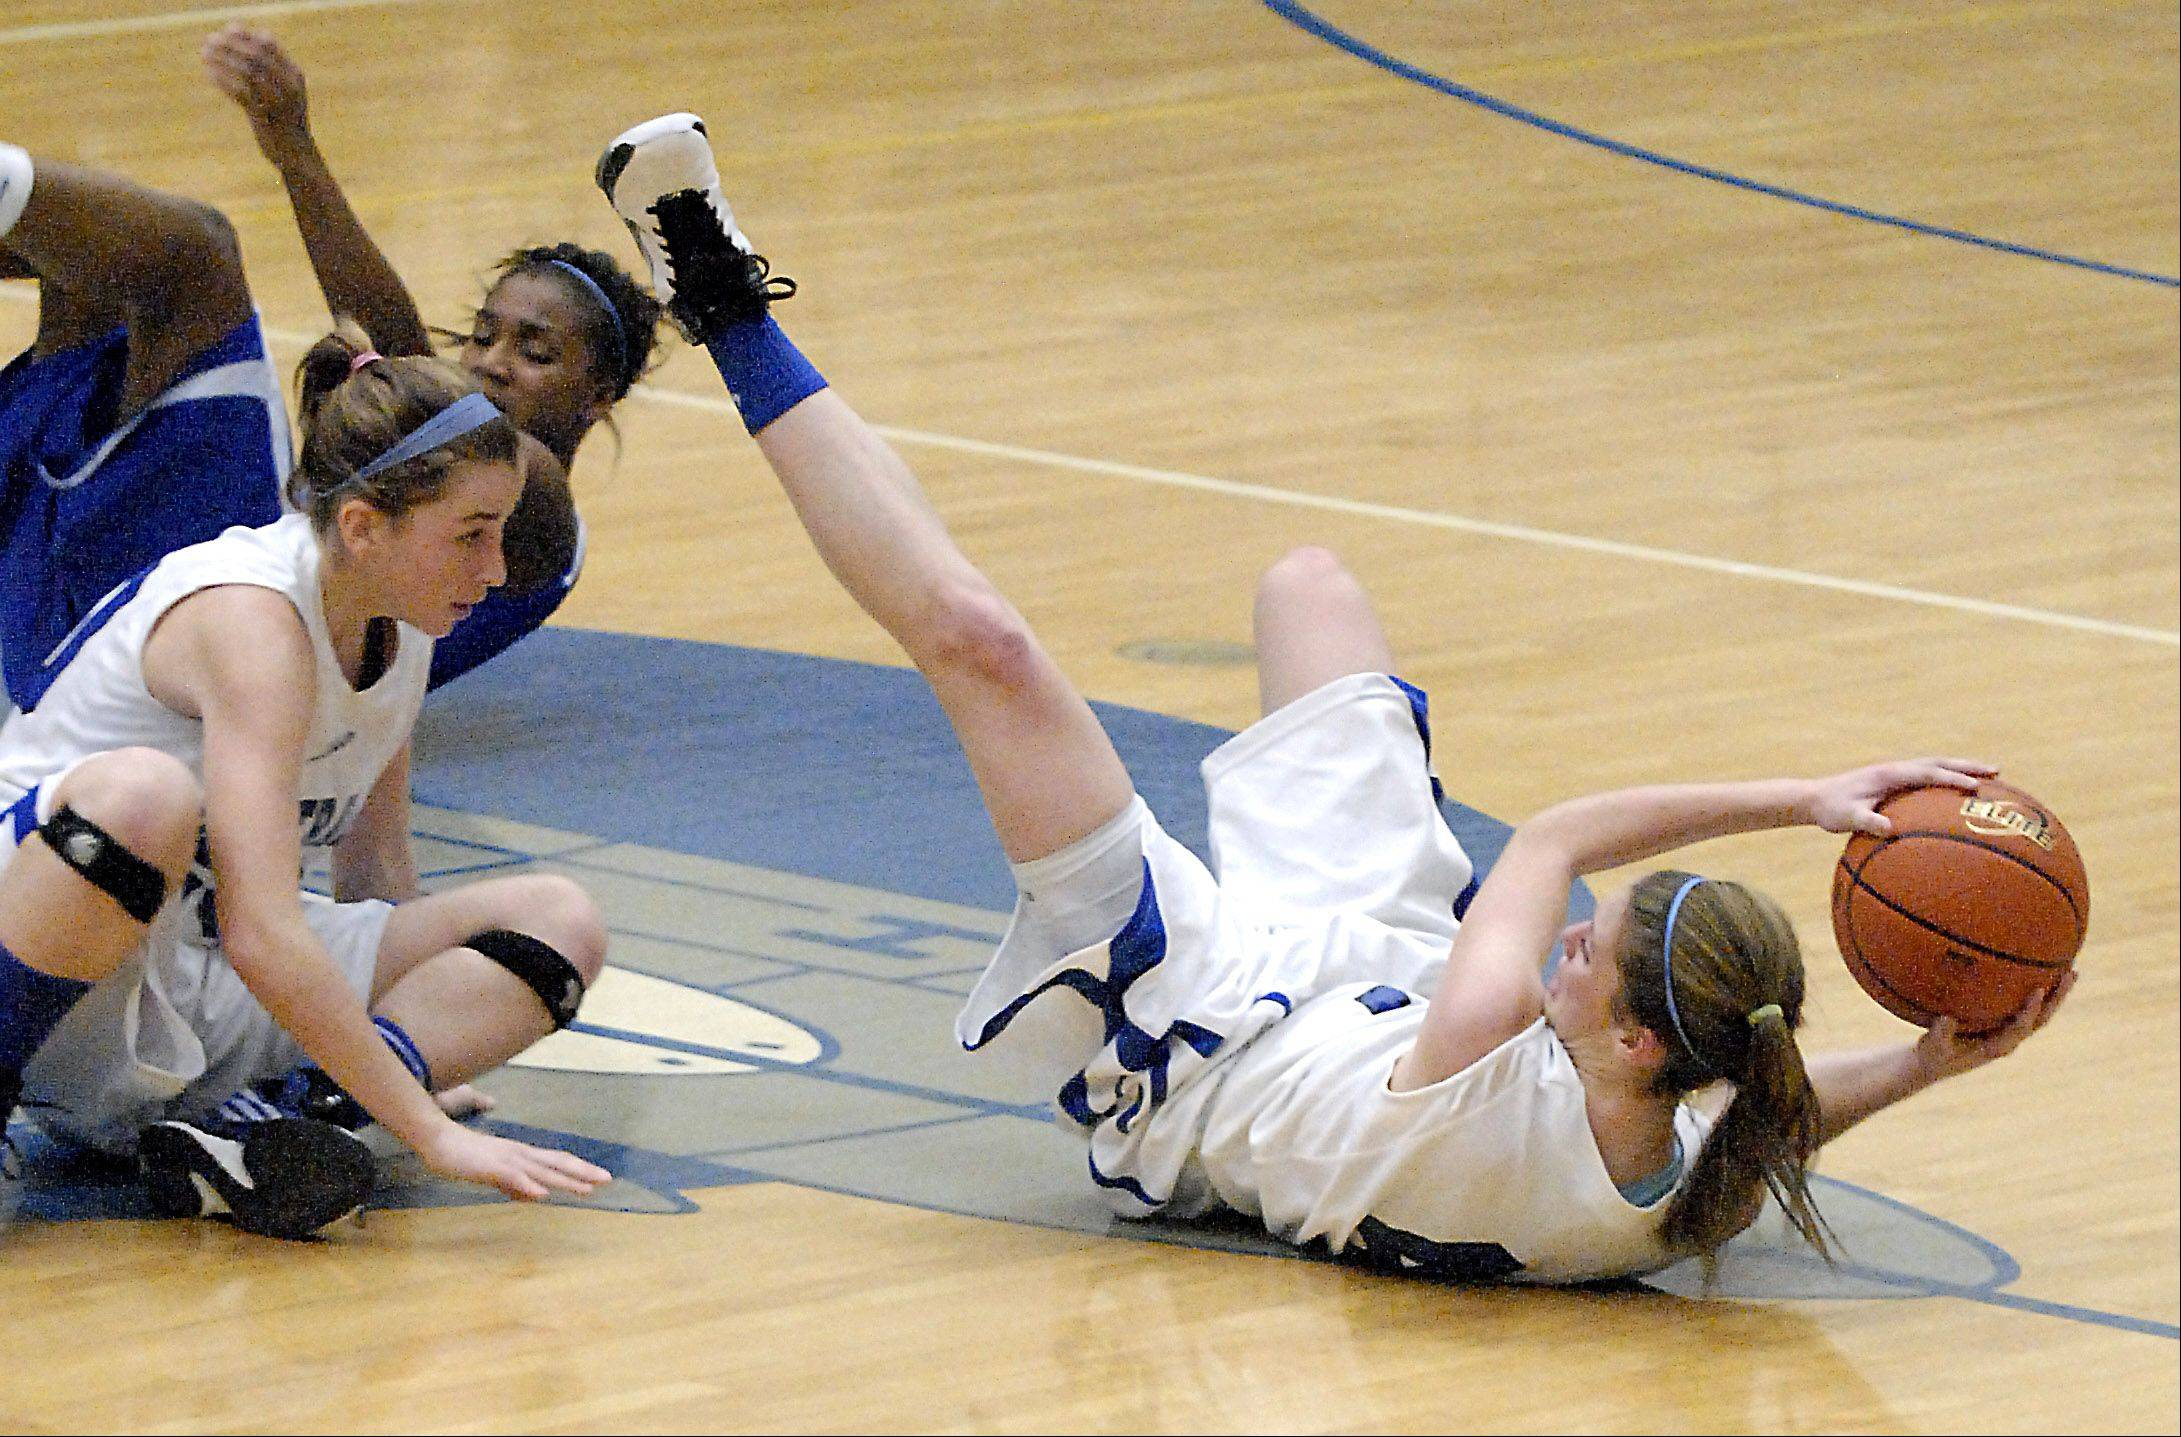 Burlington Central's Kayla Ross hangs onto the ball and looks to pass after taking a tumble with teammate Kathleen Ratzek and Larkin's Lindsey Taylor in the second quarter on Friday, November 16.